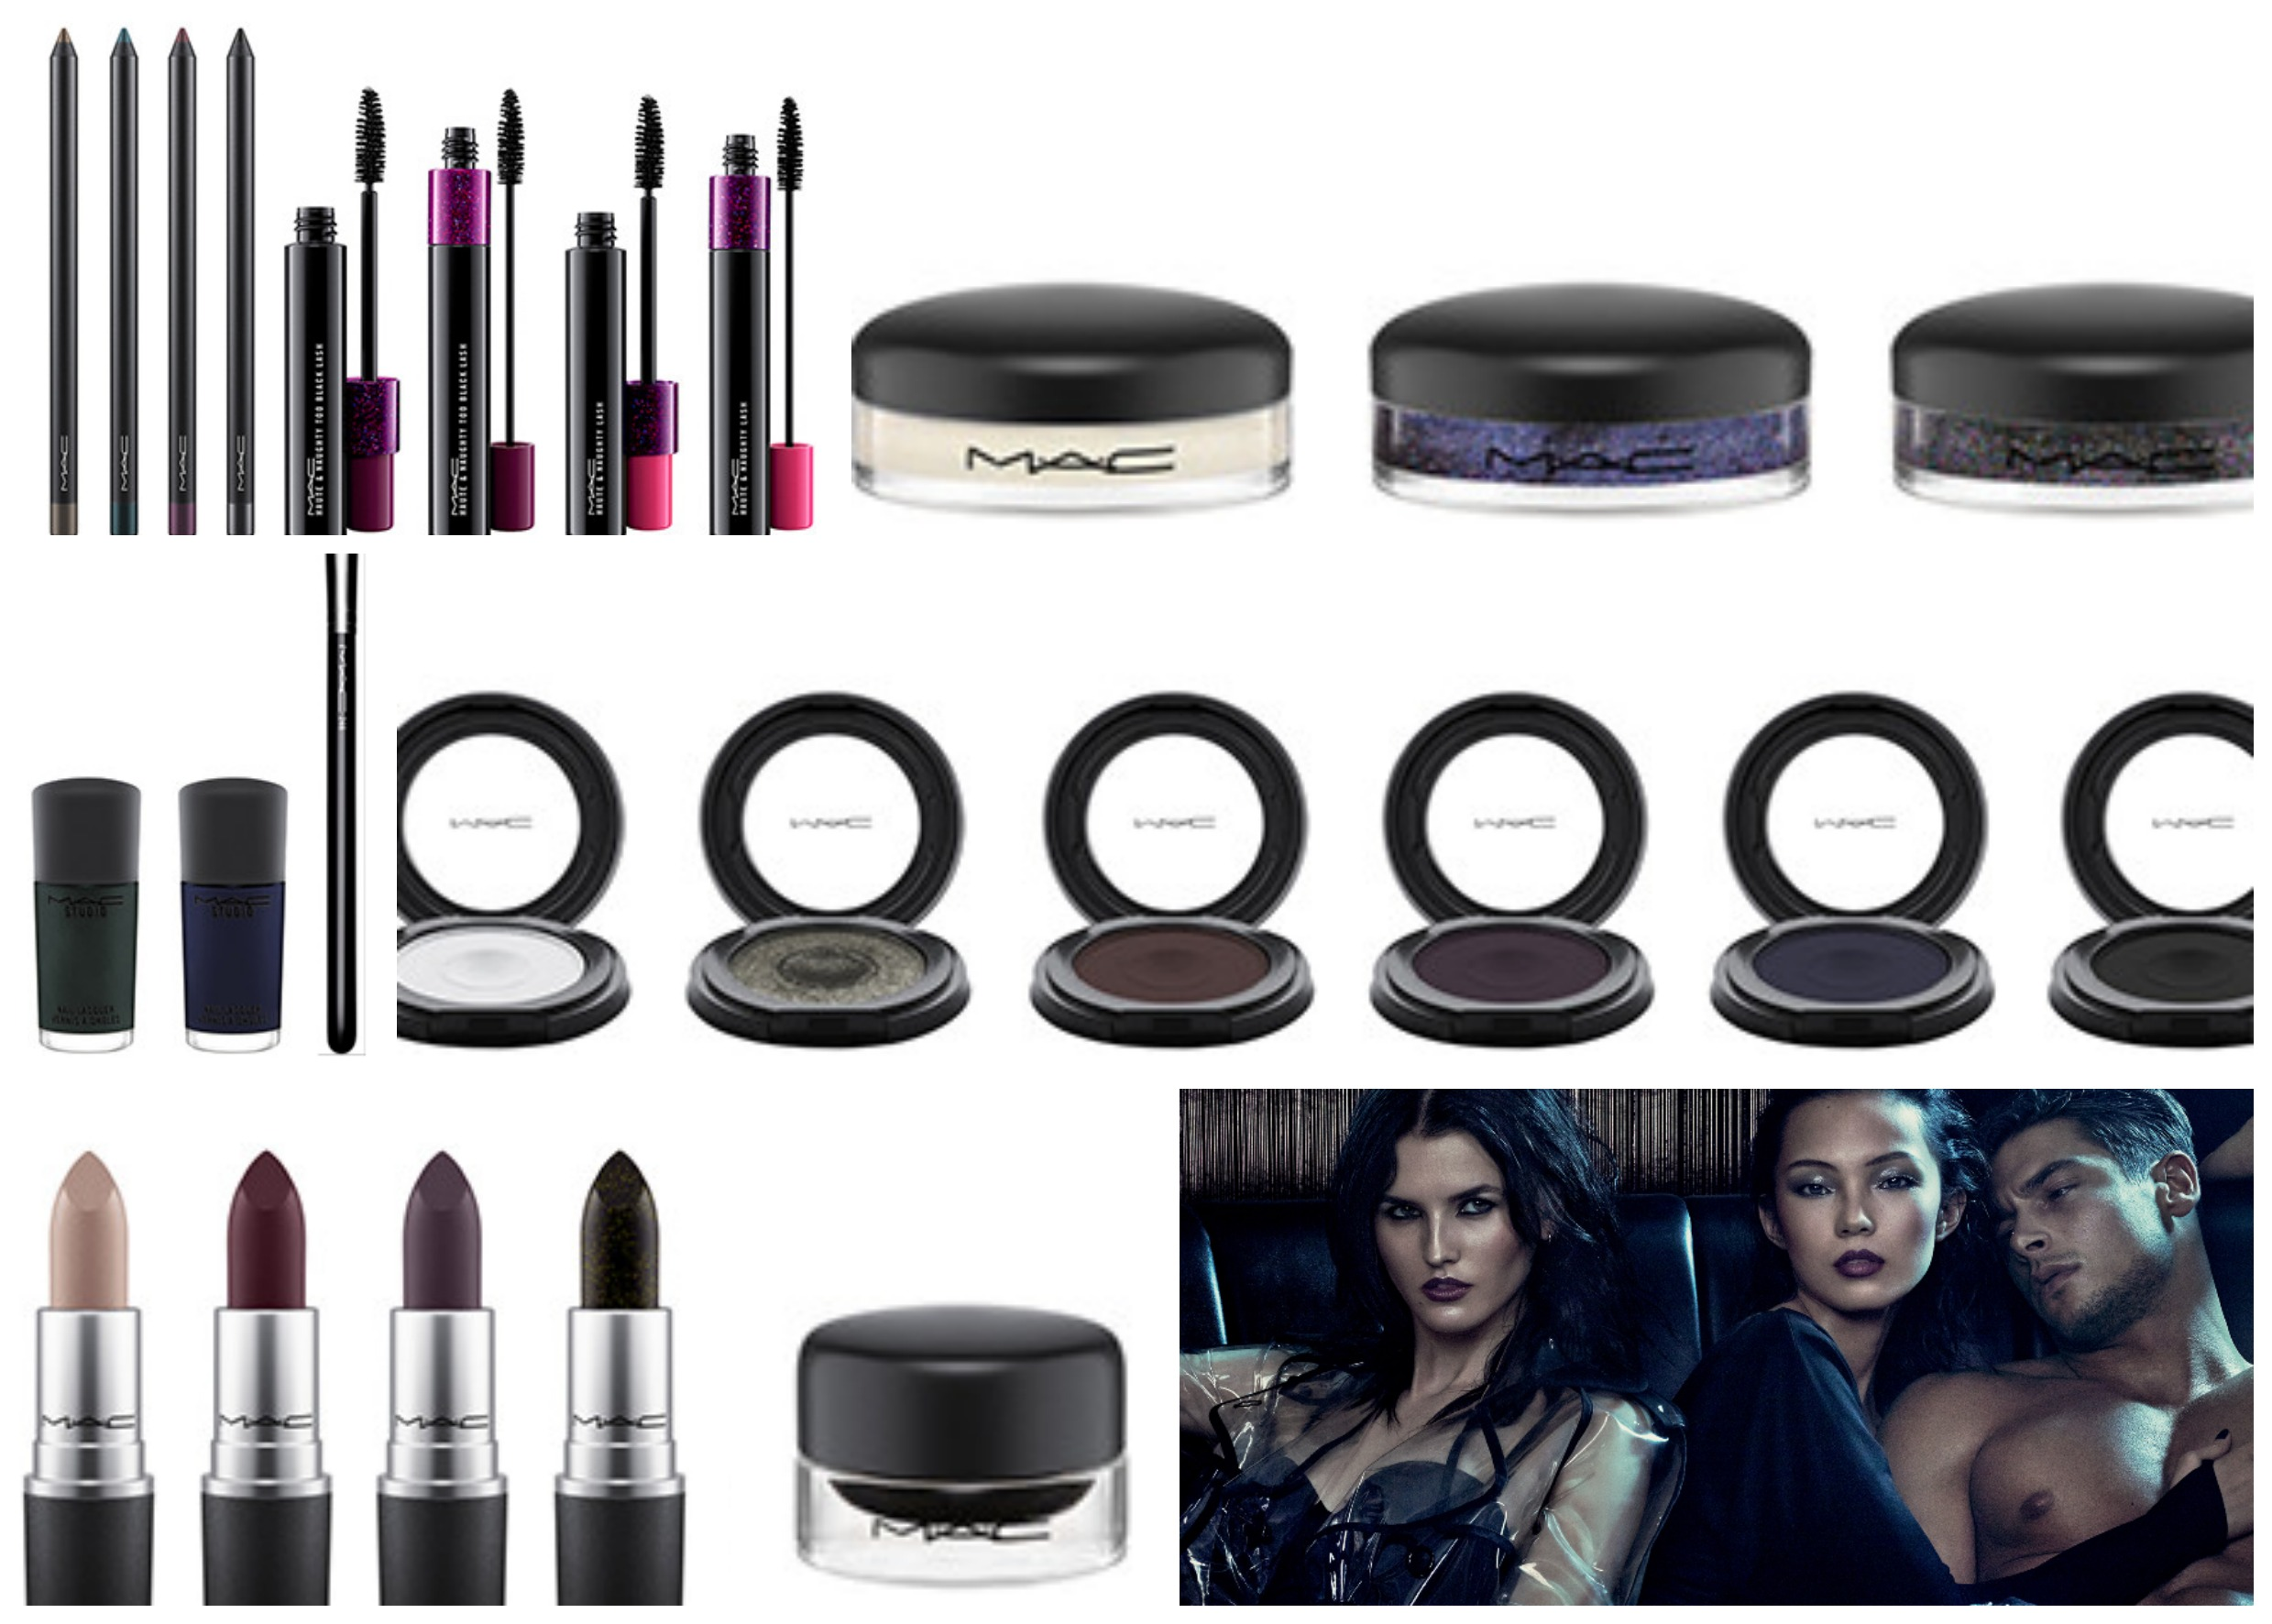 Mac Deep Desires Collection